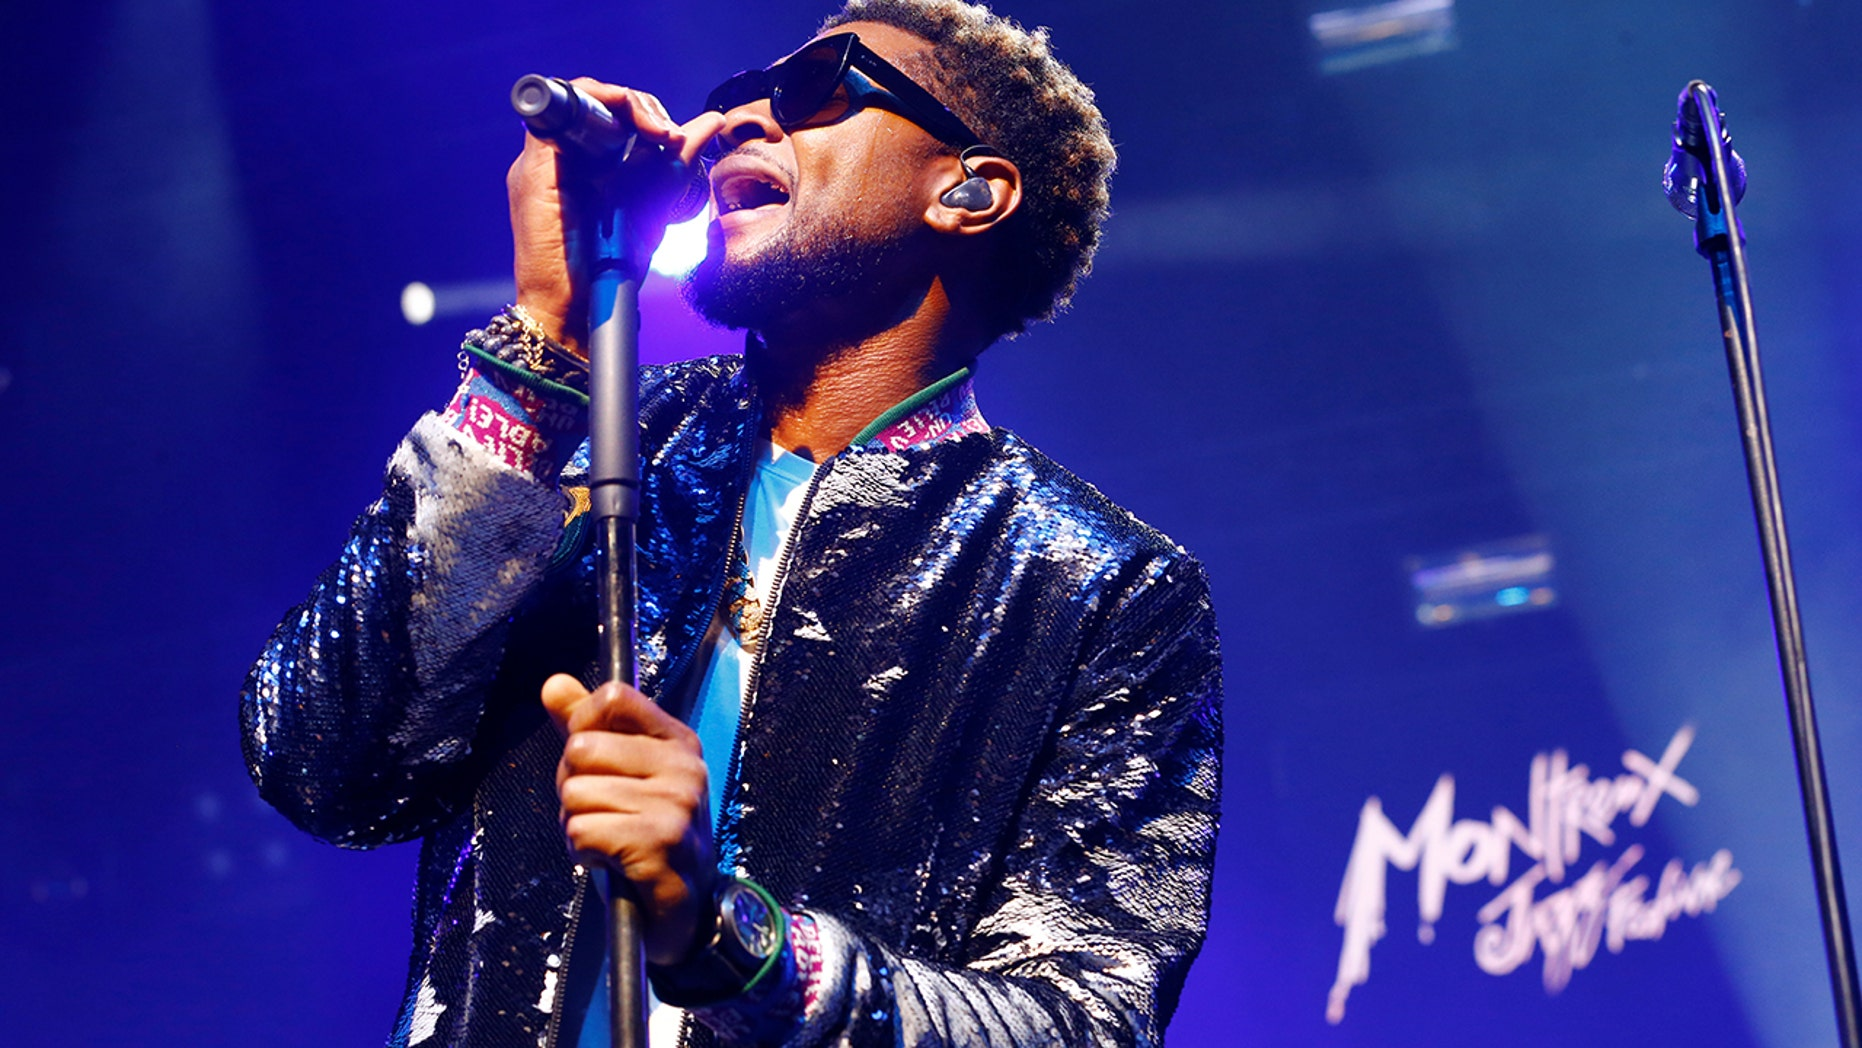 Usher & The Roots perform during the 51st Montreux Jazz Festival in Montreux, Switzerland, July 5, 2017.